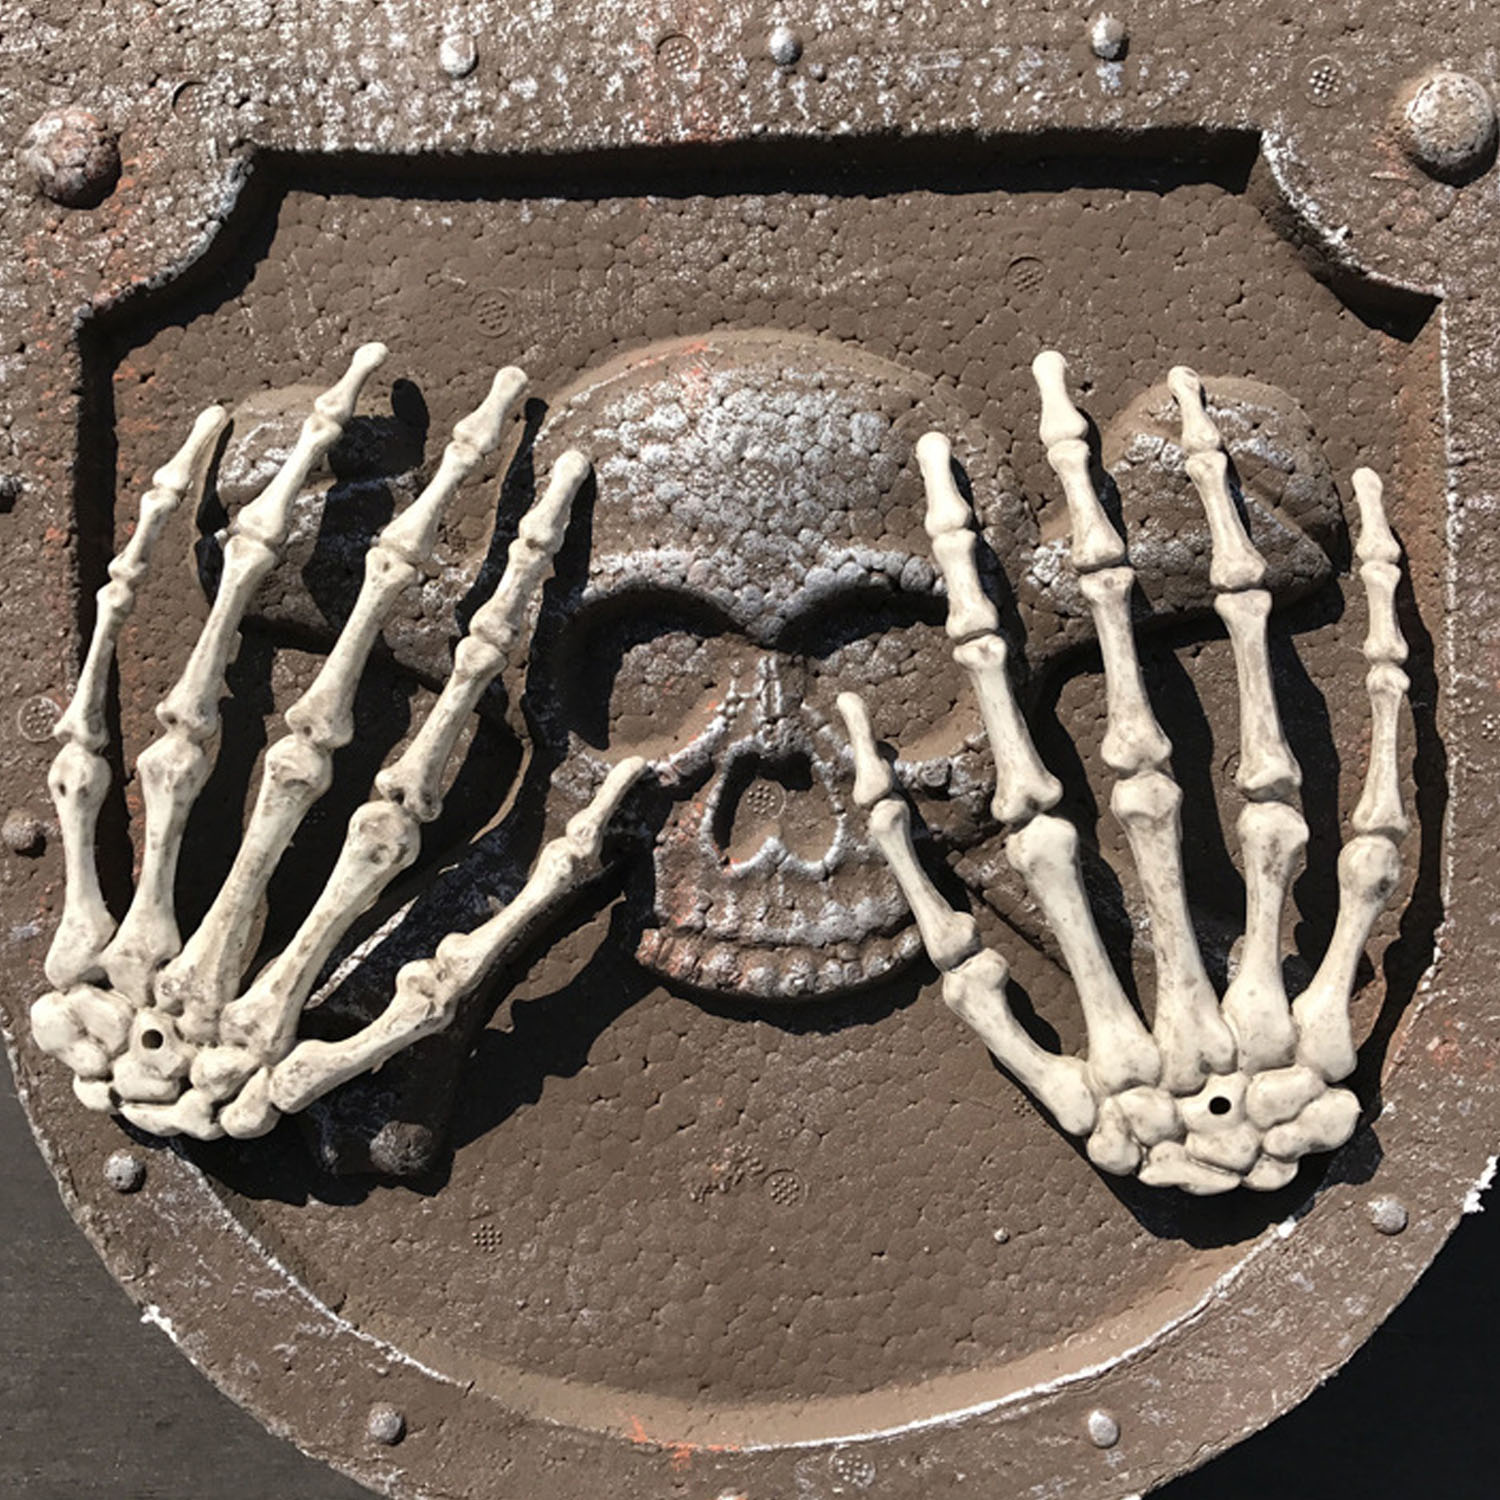 taos 1 pair plastic scary halloween skeleton hands life size hands haunted house escape horror props - Halloween Skeletons